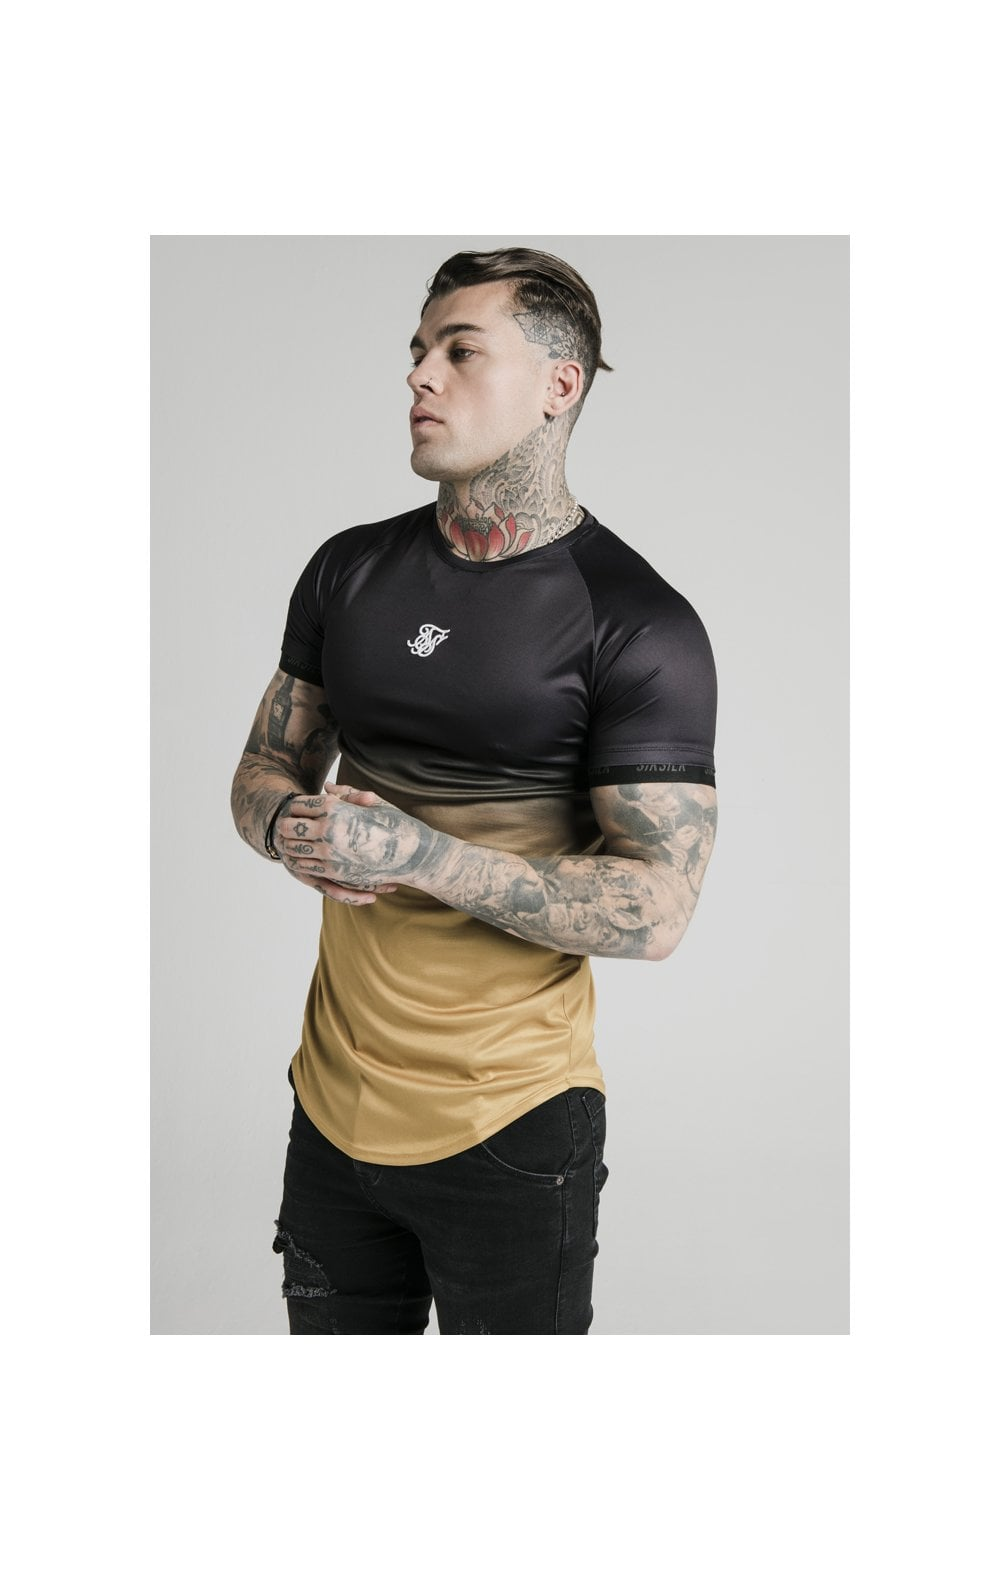 SikSilk S/S  Fade Tech Tee - Black & Gold